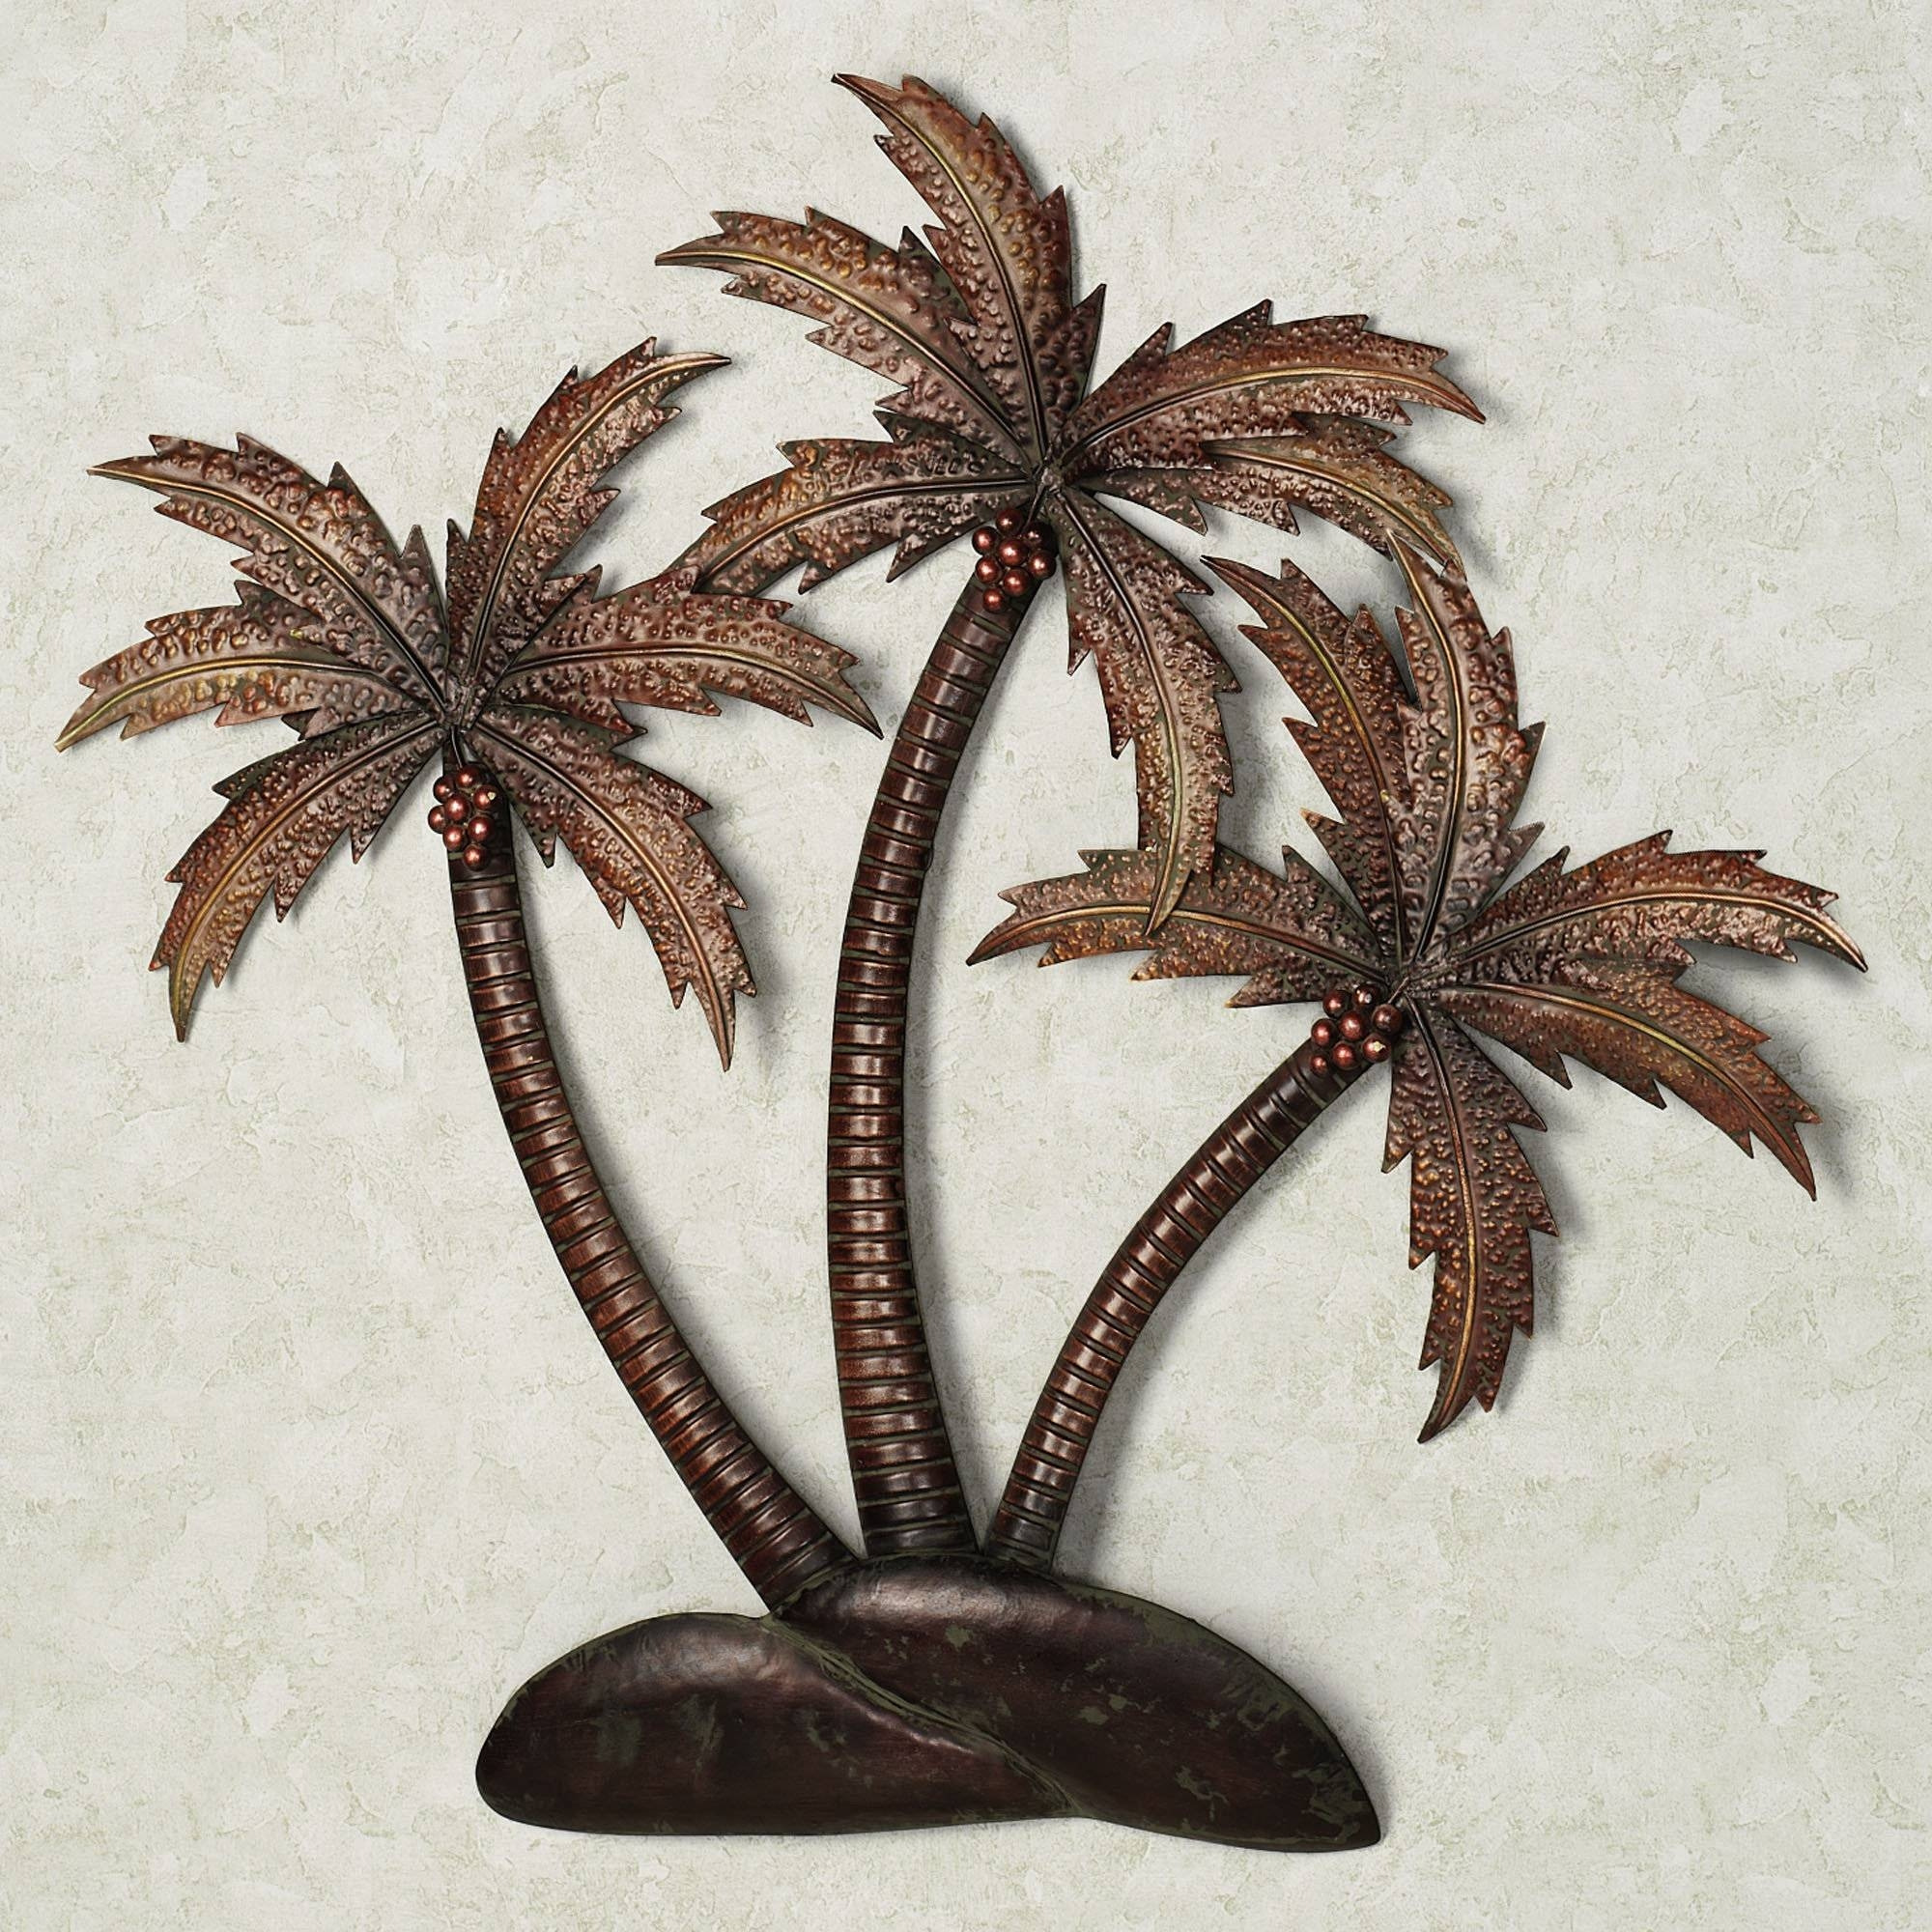 Wall Art Designs: Metal Palm Tree Wall Art Luxury On Large Wall Inside Most Recently Released Bronze Metal Wall Art (View 18 of 20)